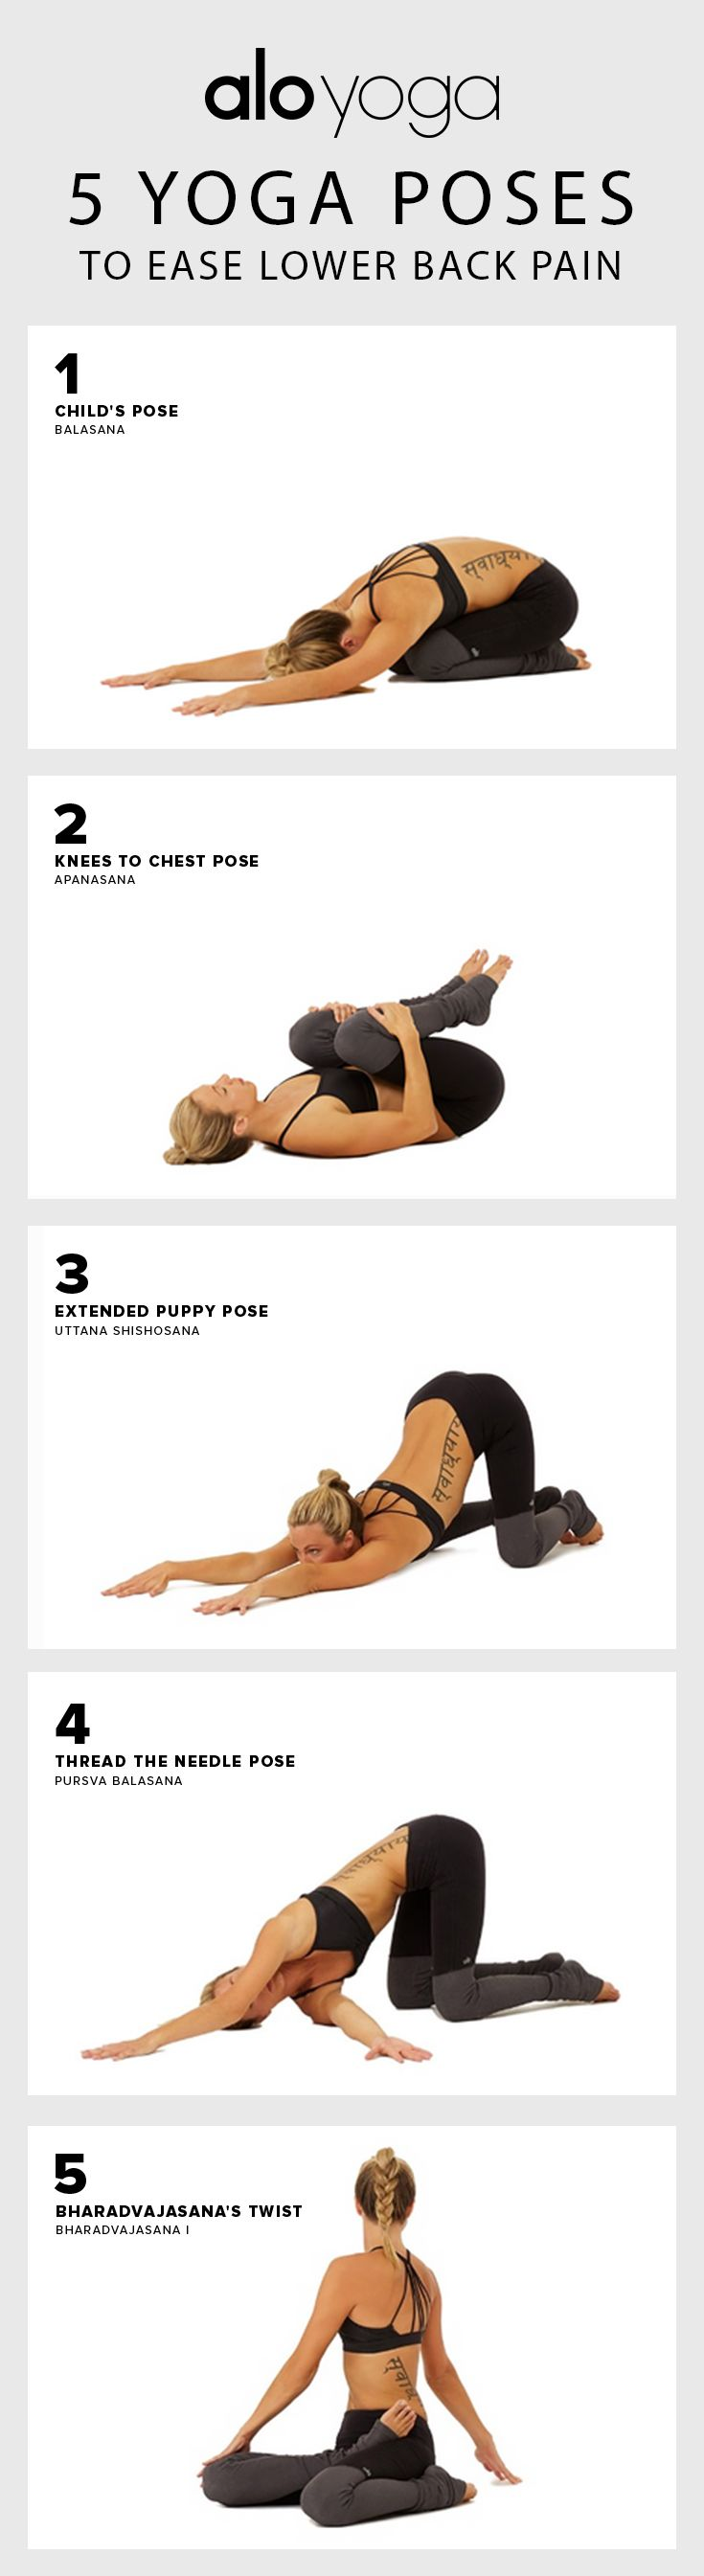 Getting rid of lower back pain the easy way 5 Yoga Poses to Ease Lower Back Pain #yoga #yogaposes #backpain